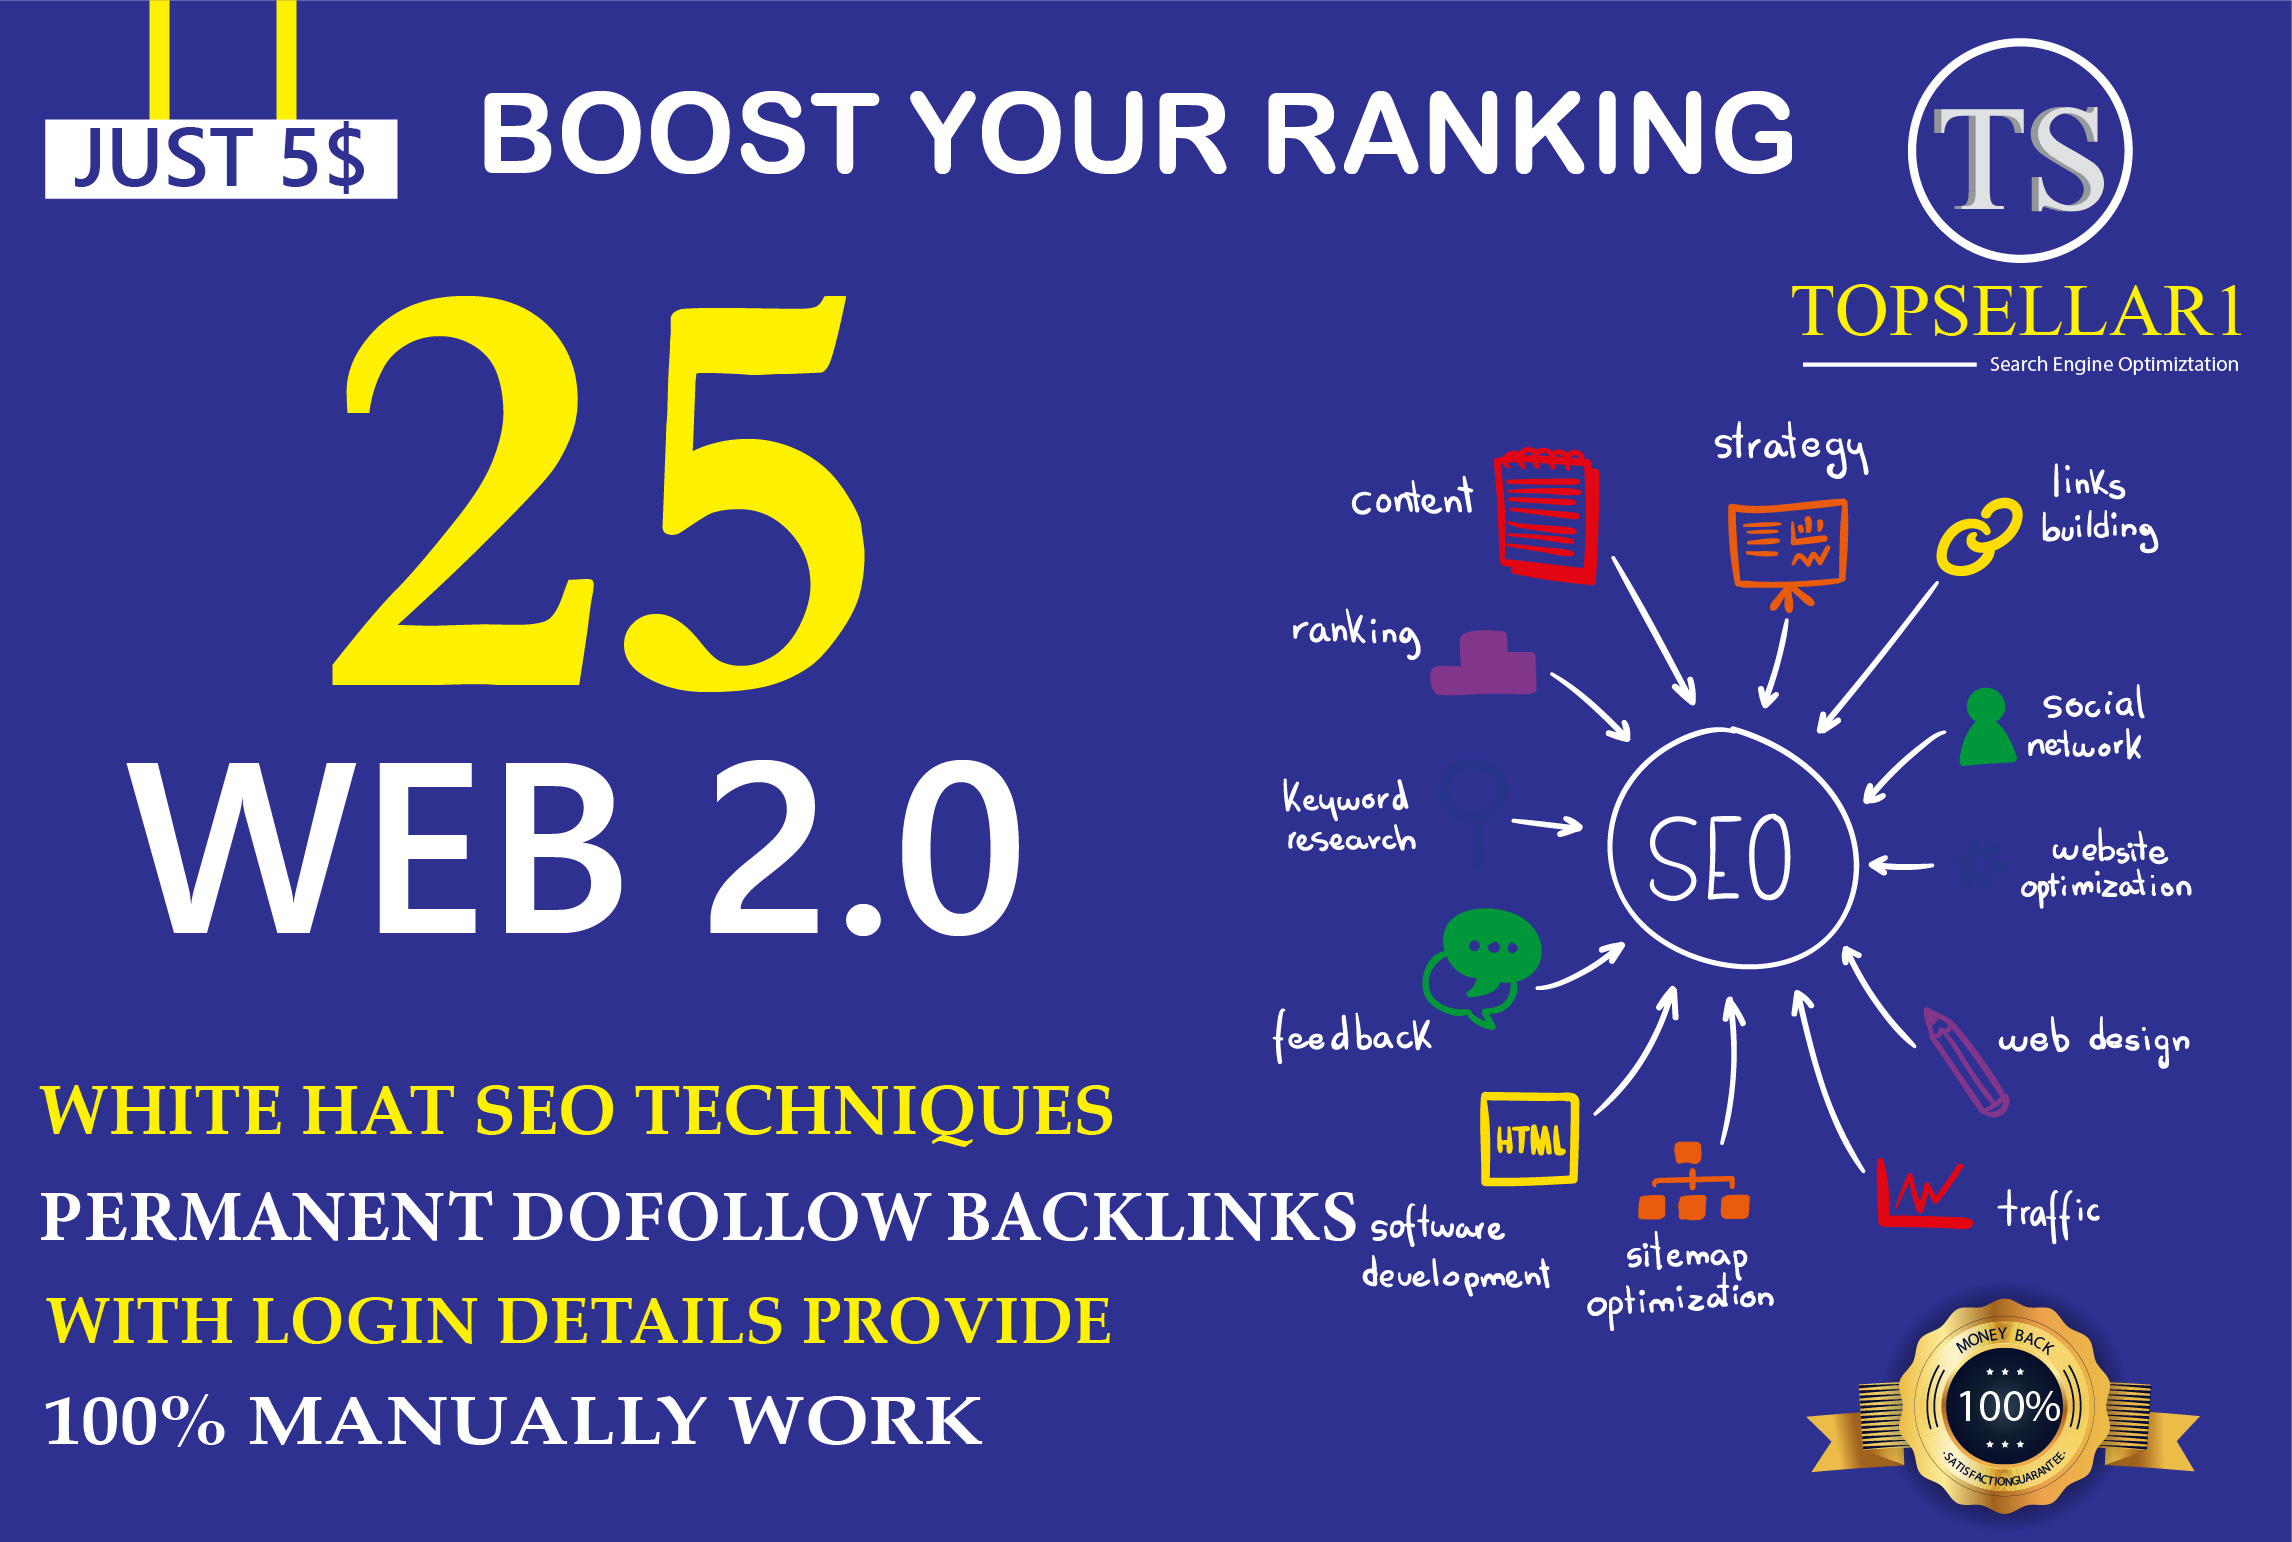 create 25 super web 2.0 blog properties with login for contextual backlinks